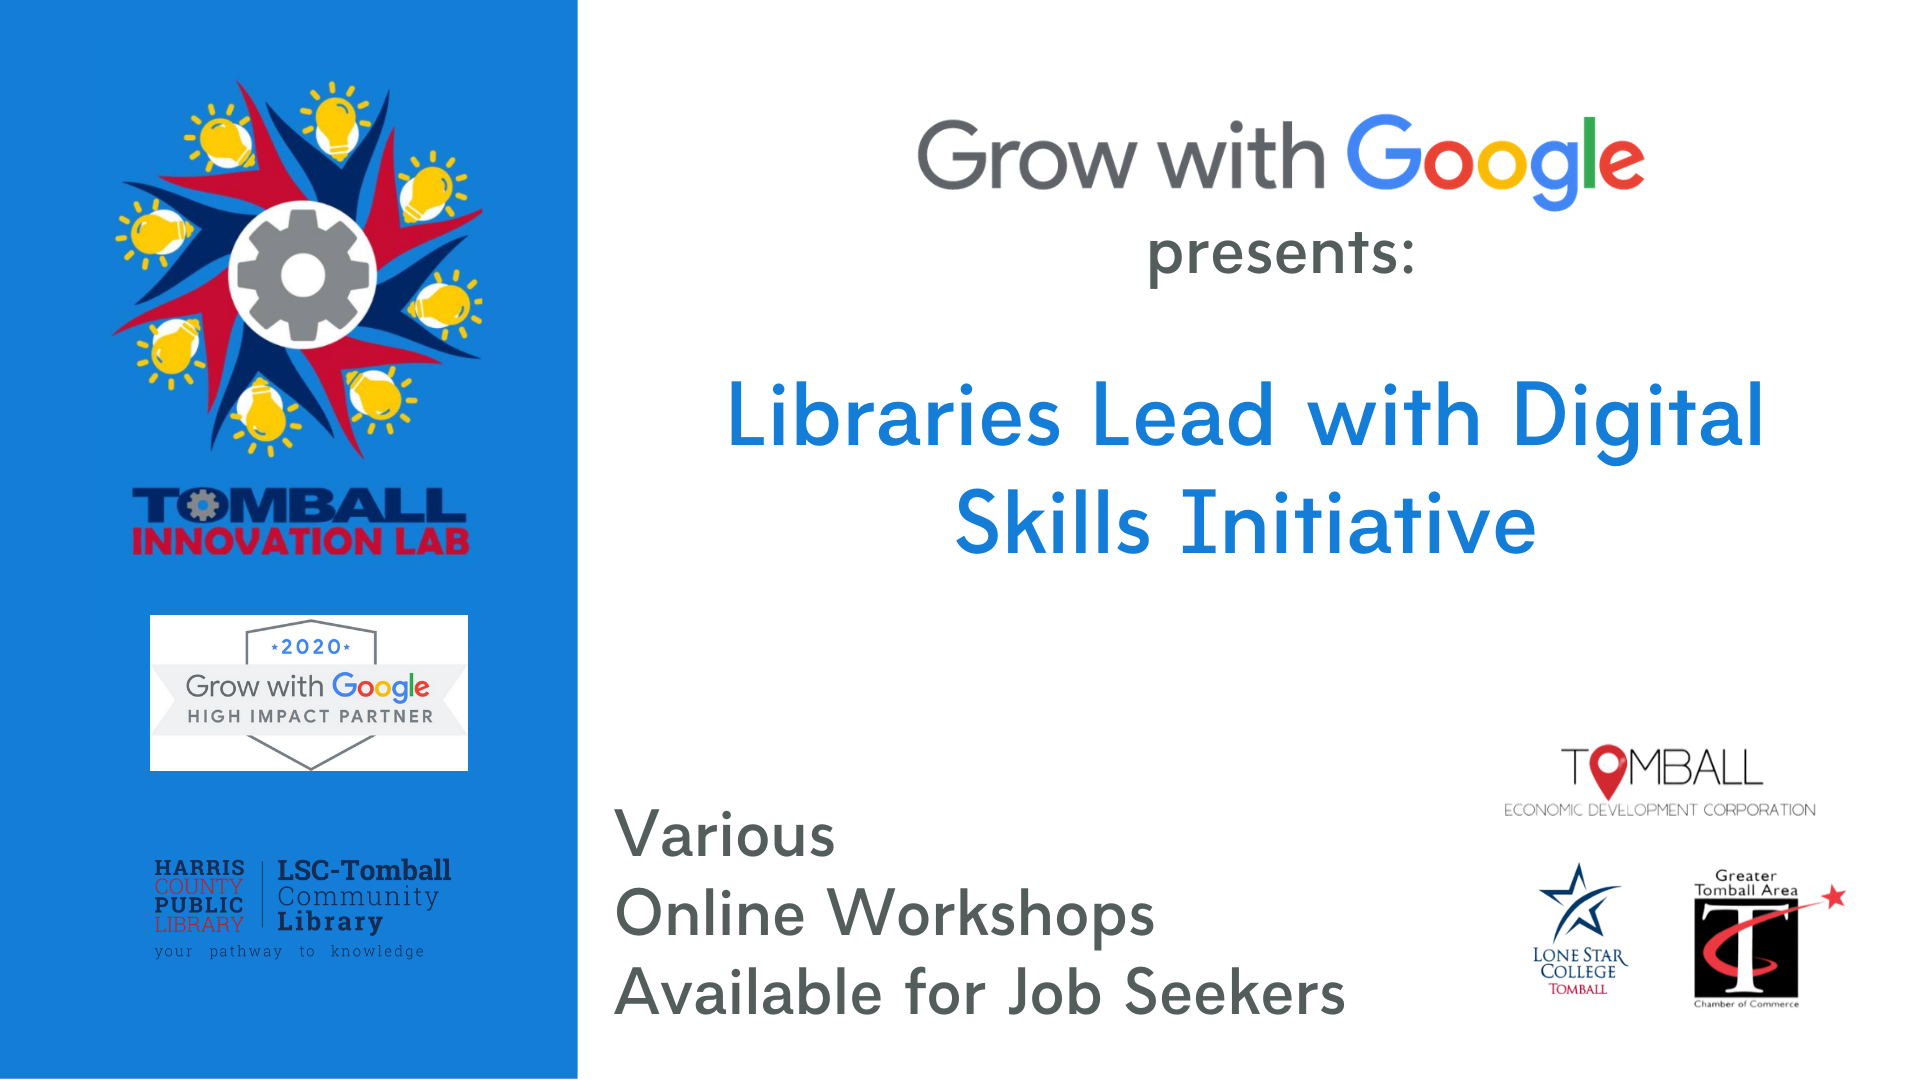 Libraries lead with Google